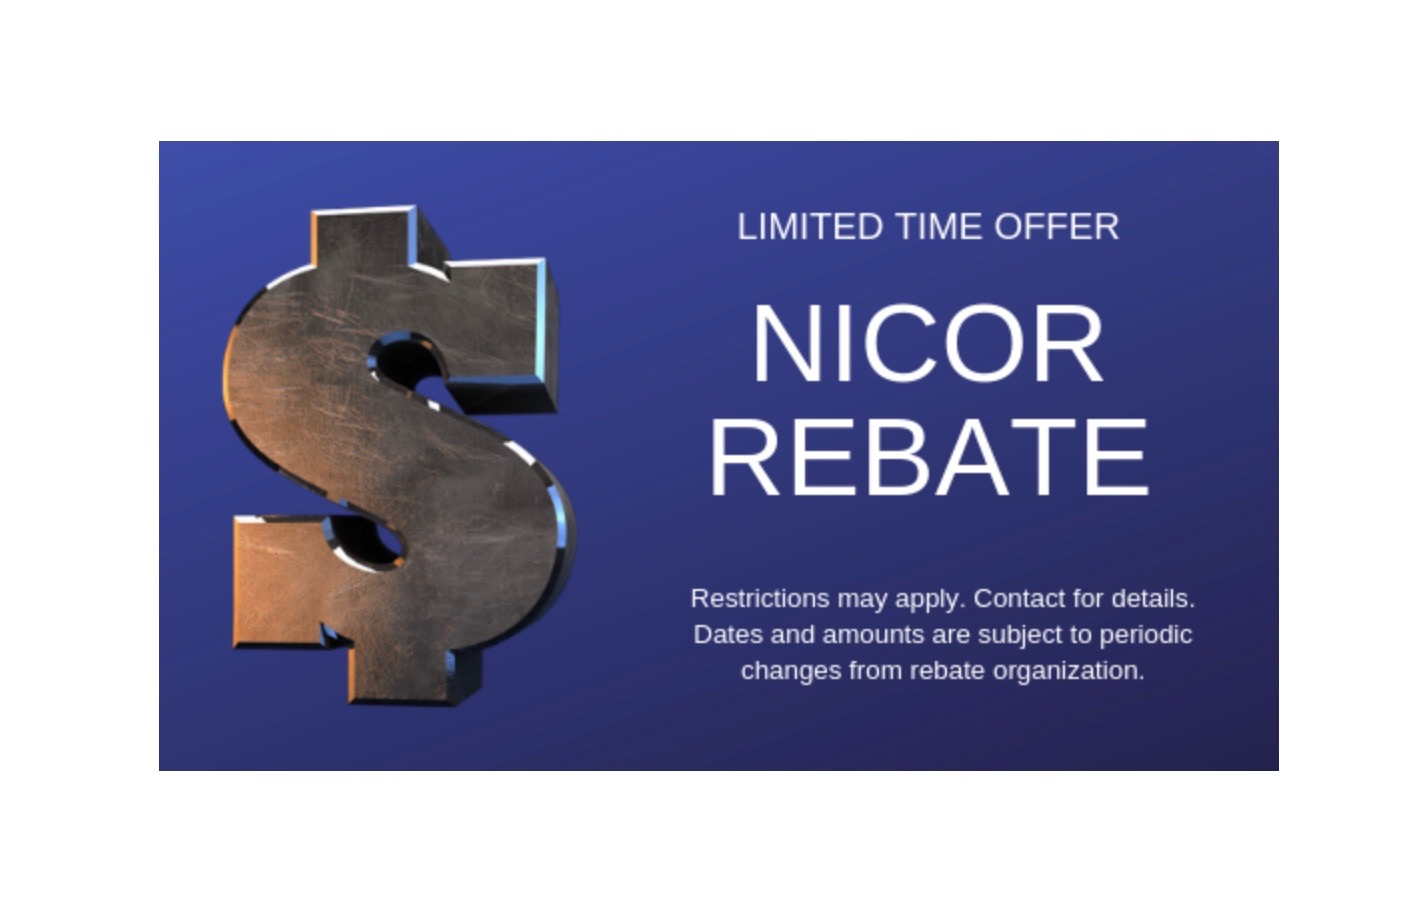 Nicor Rebate - SAVE up to $175 NICOR REBATE Limited Time Offer.Restrictions may apply. Contact for details. Dates and amounts are subject to periodic changes from rebate organization.